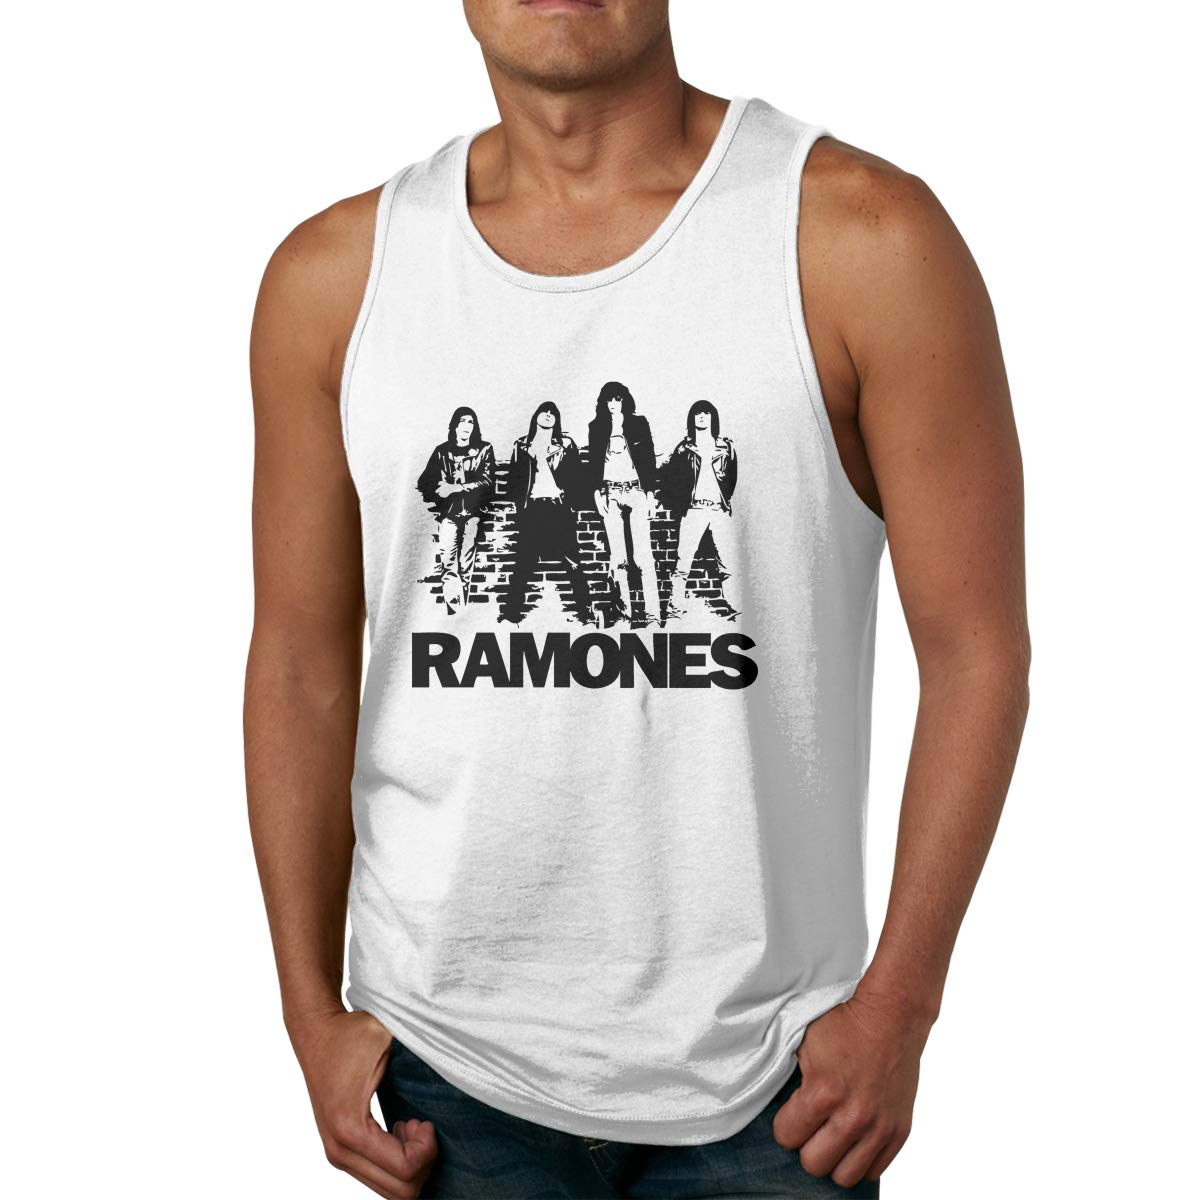 Hawnferk The Ramones Punk Rock Band Tank Tops For Stretchy Sleeveless Shirt Low Wor